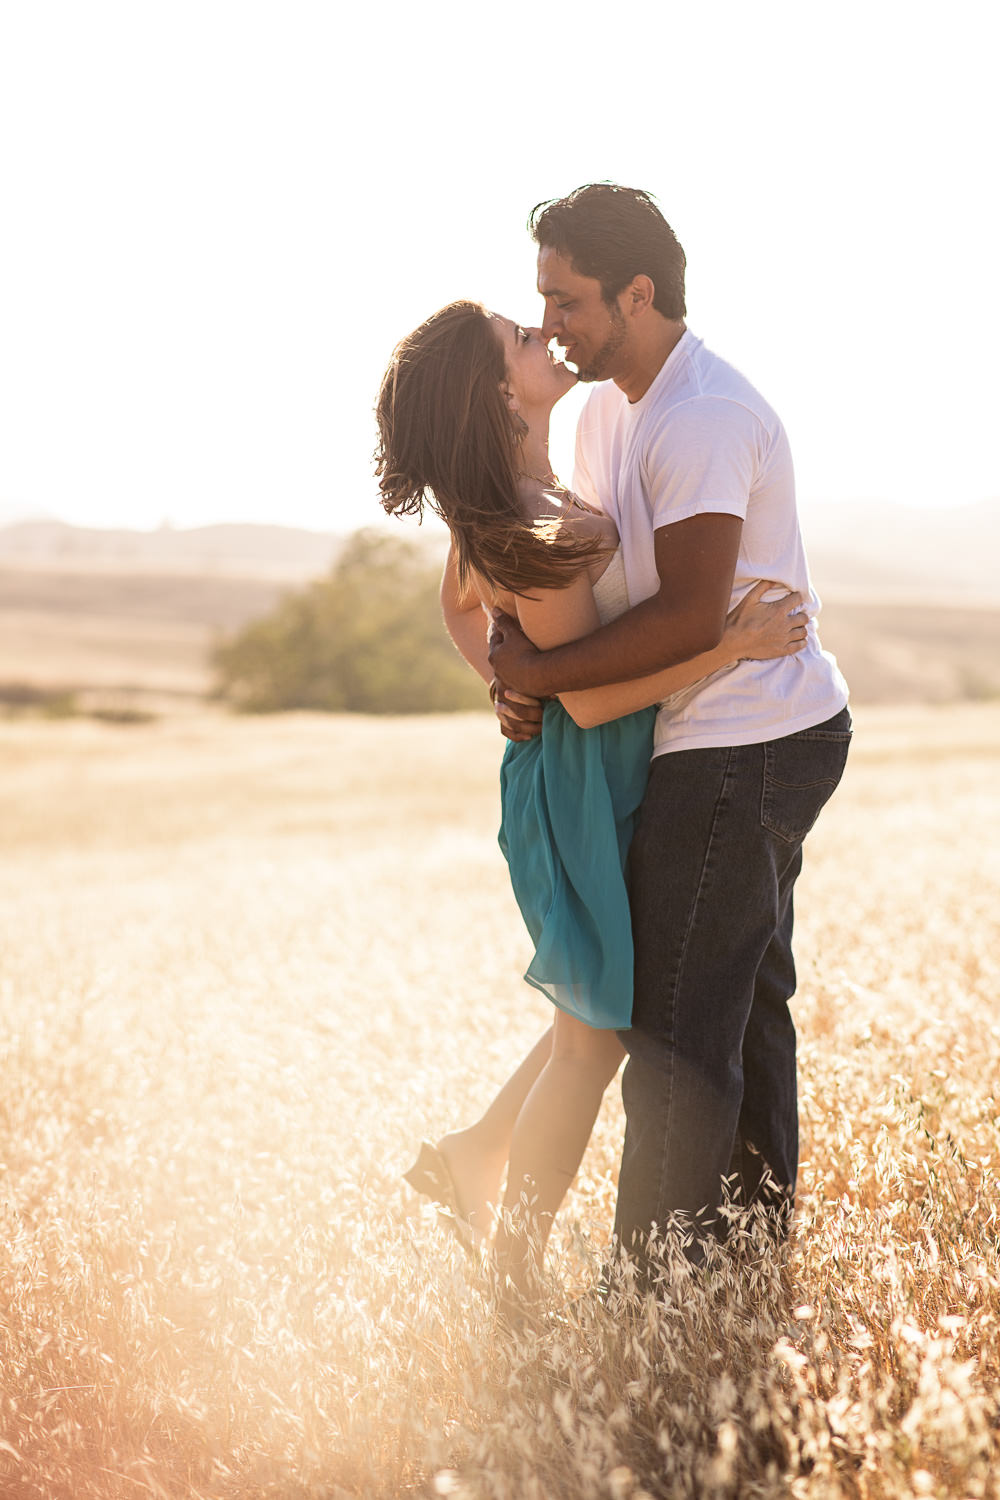 f27-Photography-Engagement-Session-thousand-oaks-field-kiss